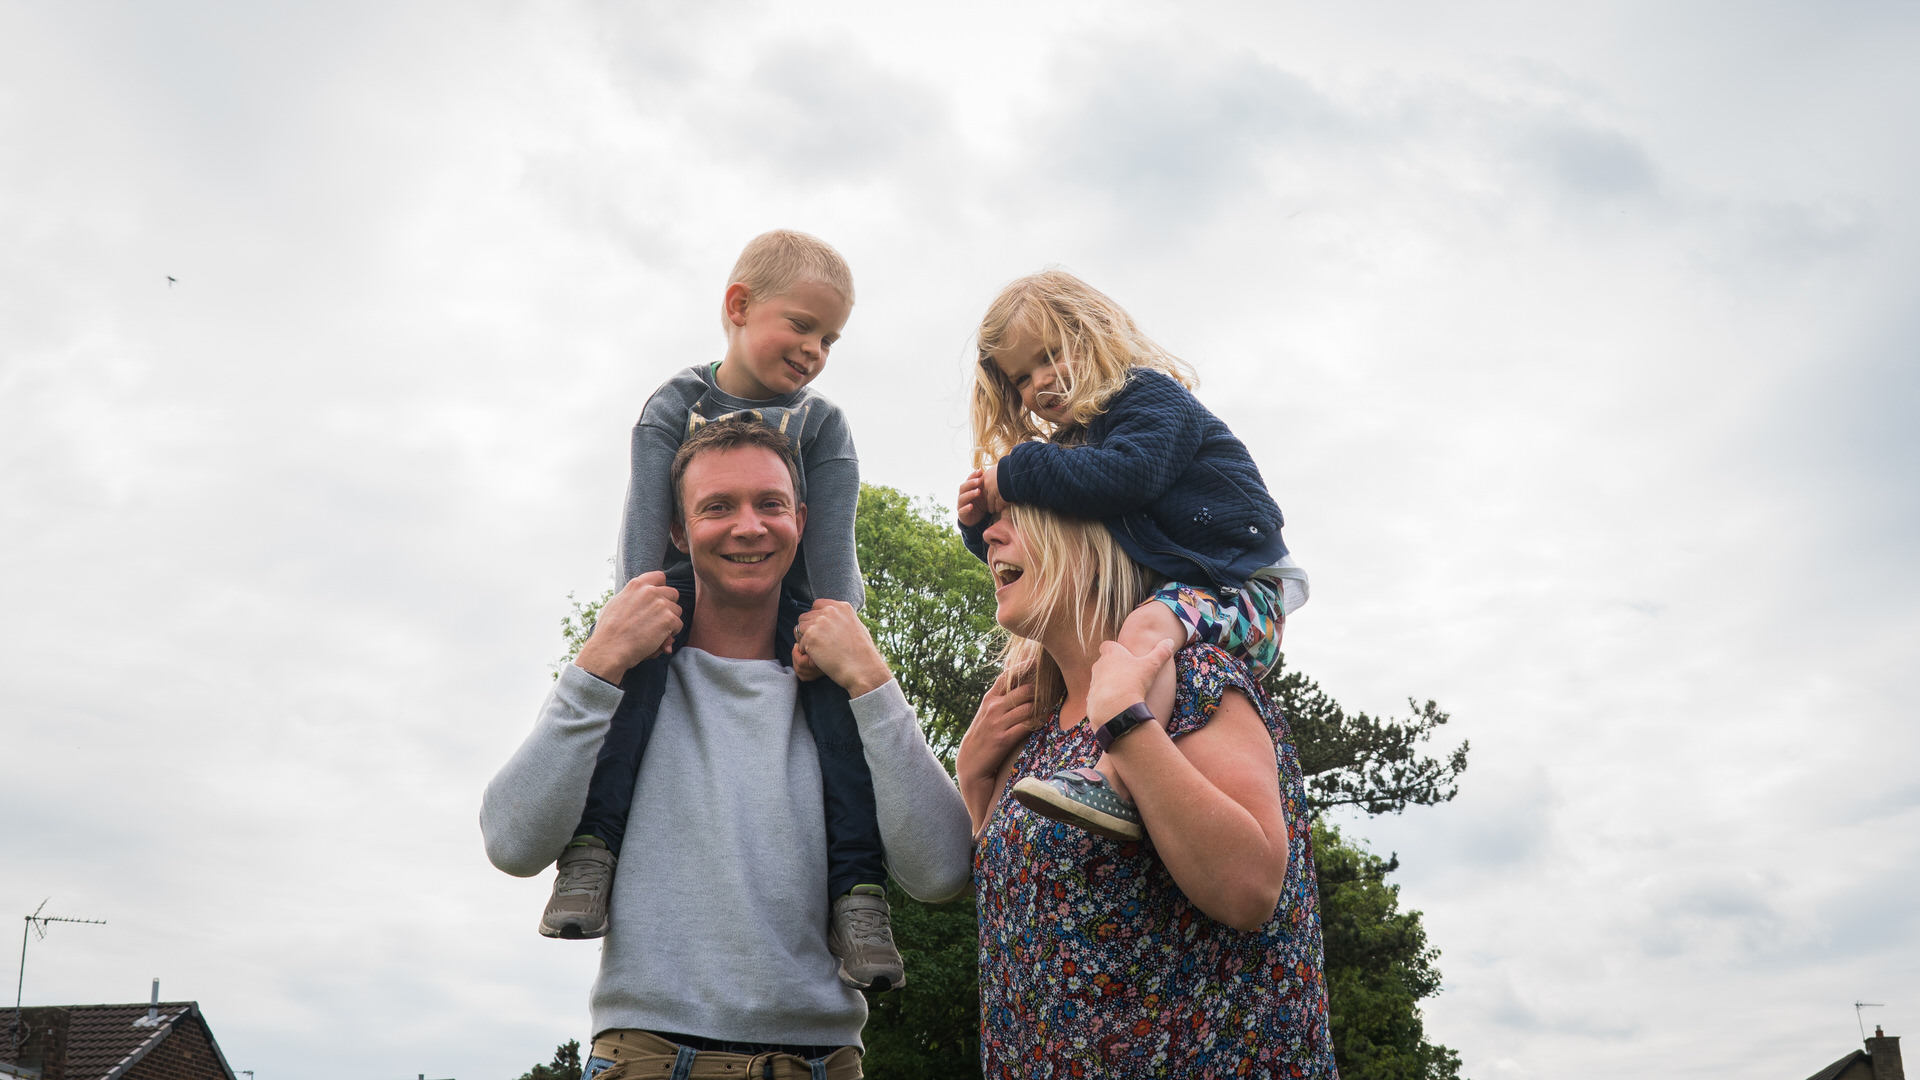 an alternative family portrait of a family being silly with the kids on shoulders at the park